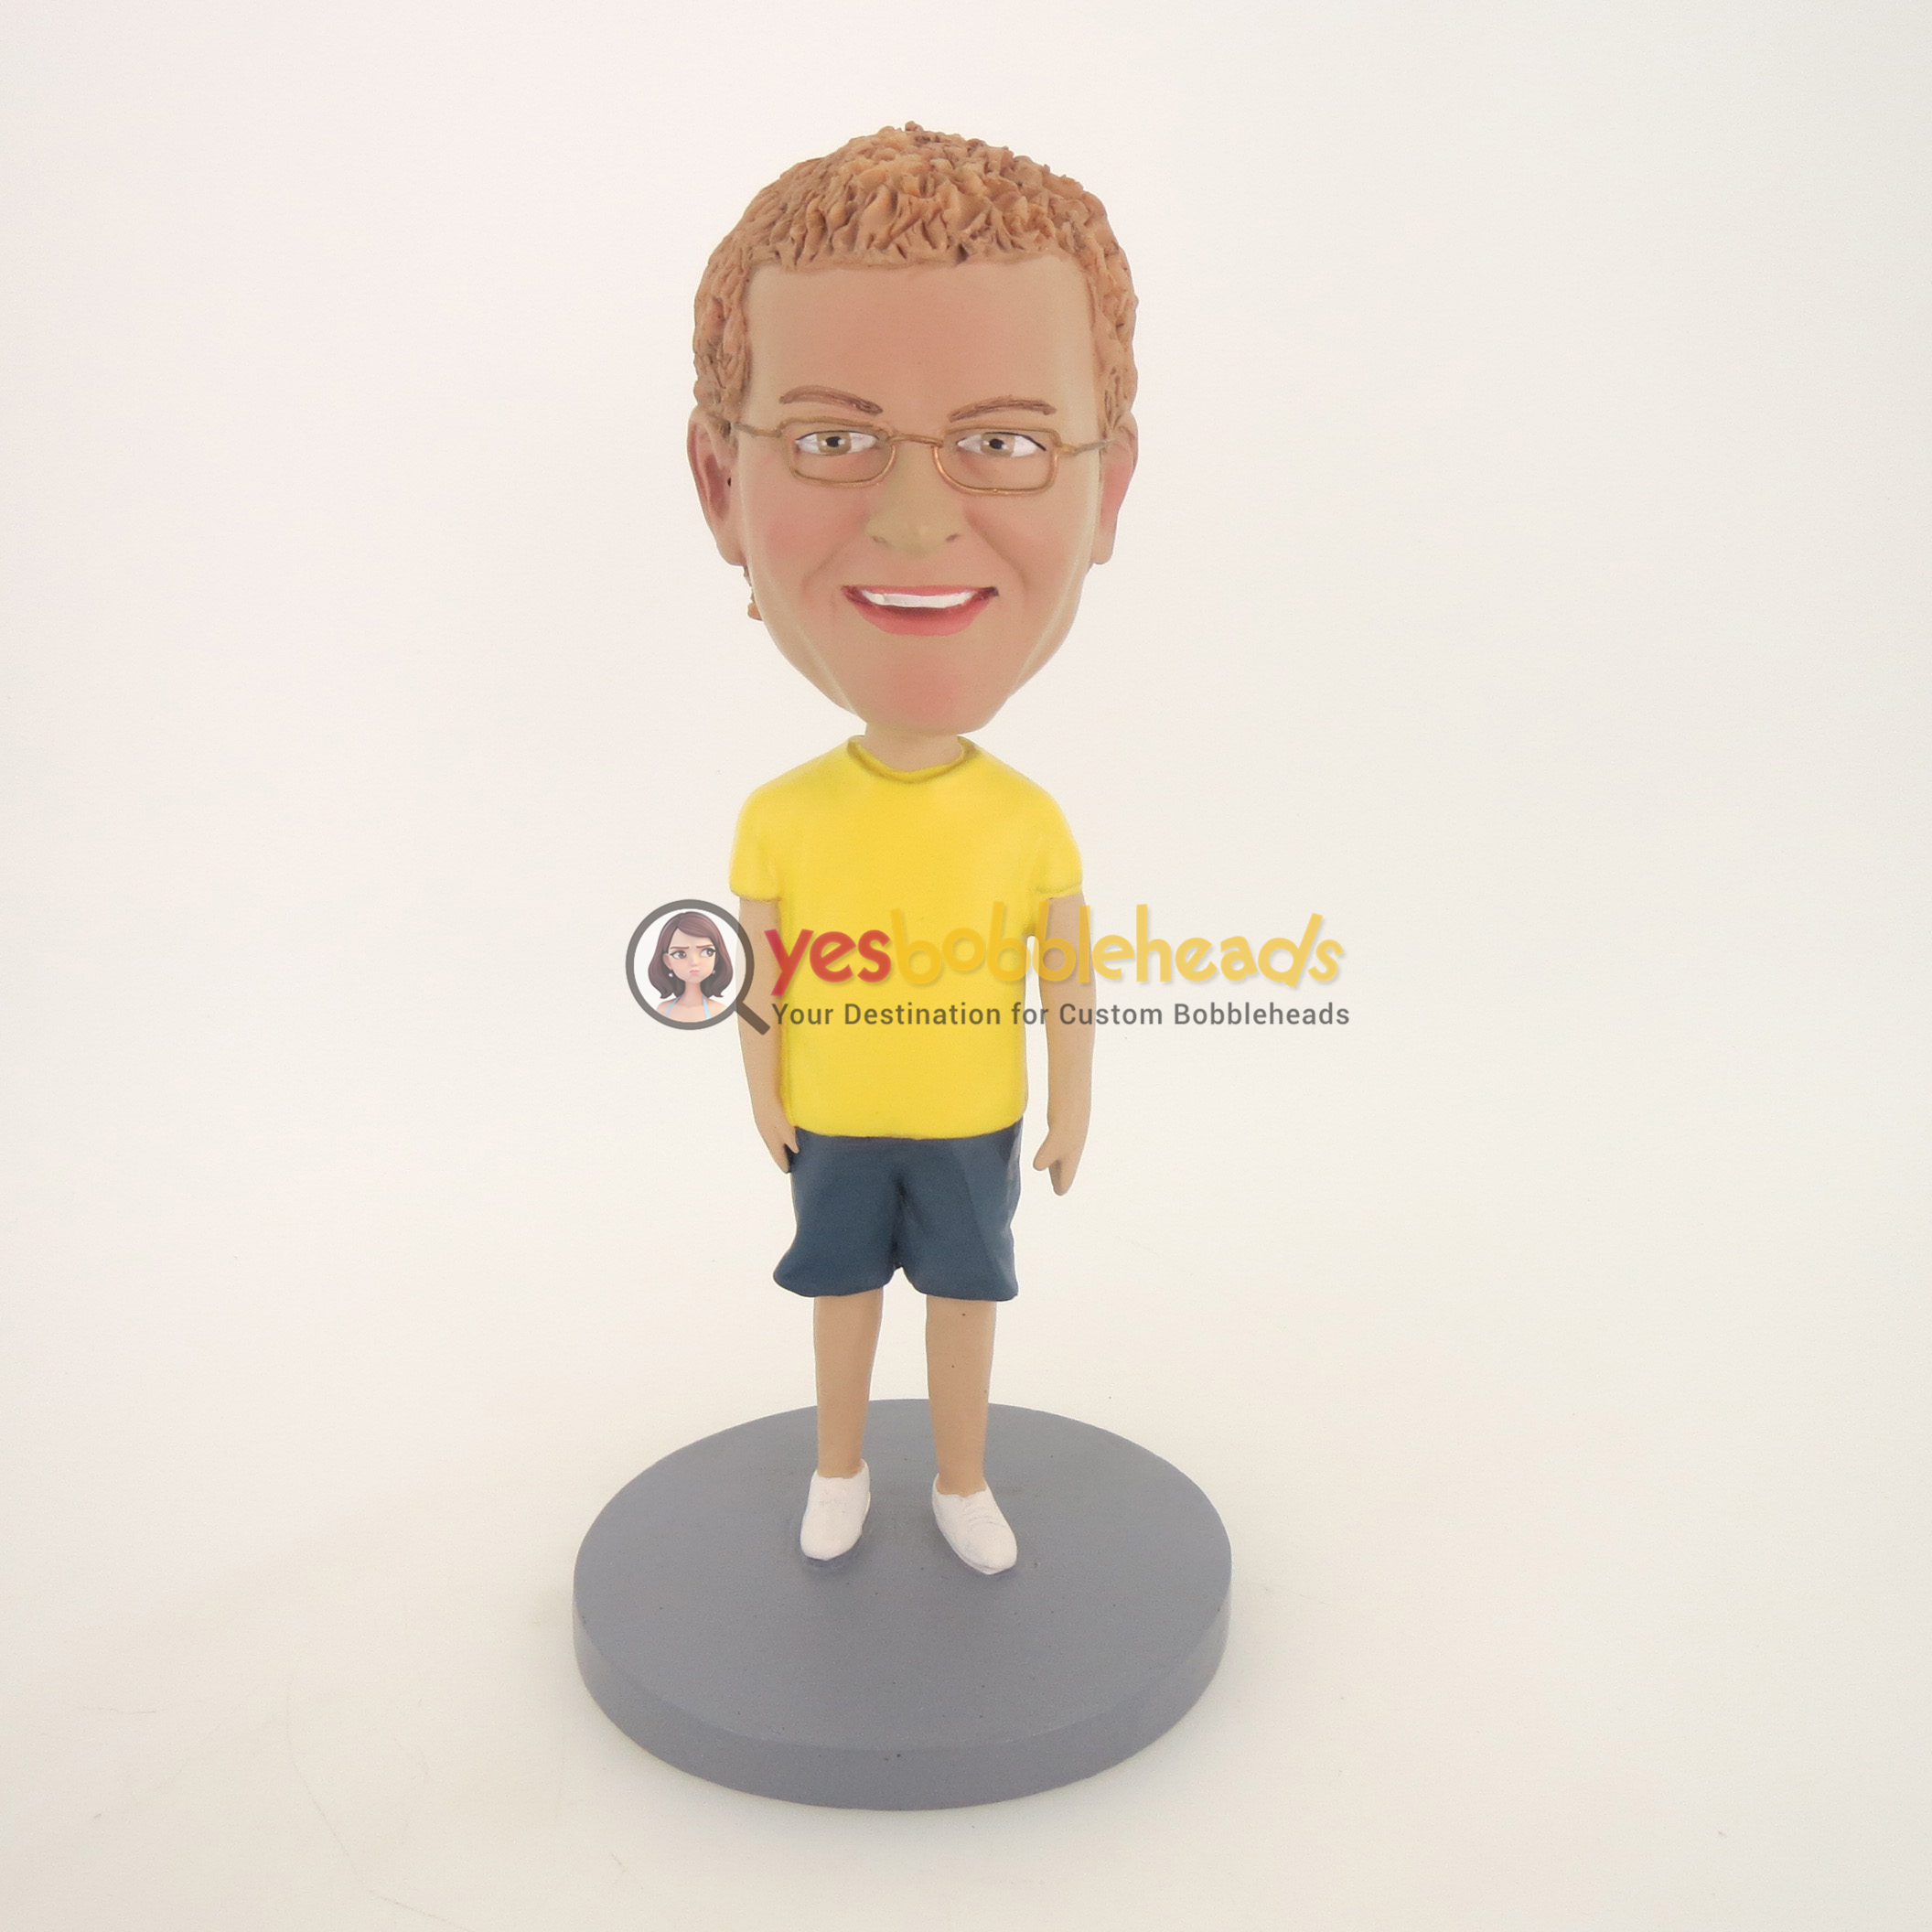 Picture of Custom Bobblehead Doll: Casual Man In Yellow and Blue